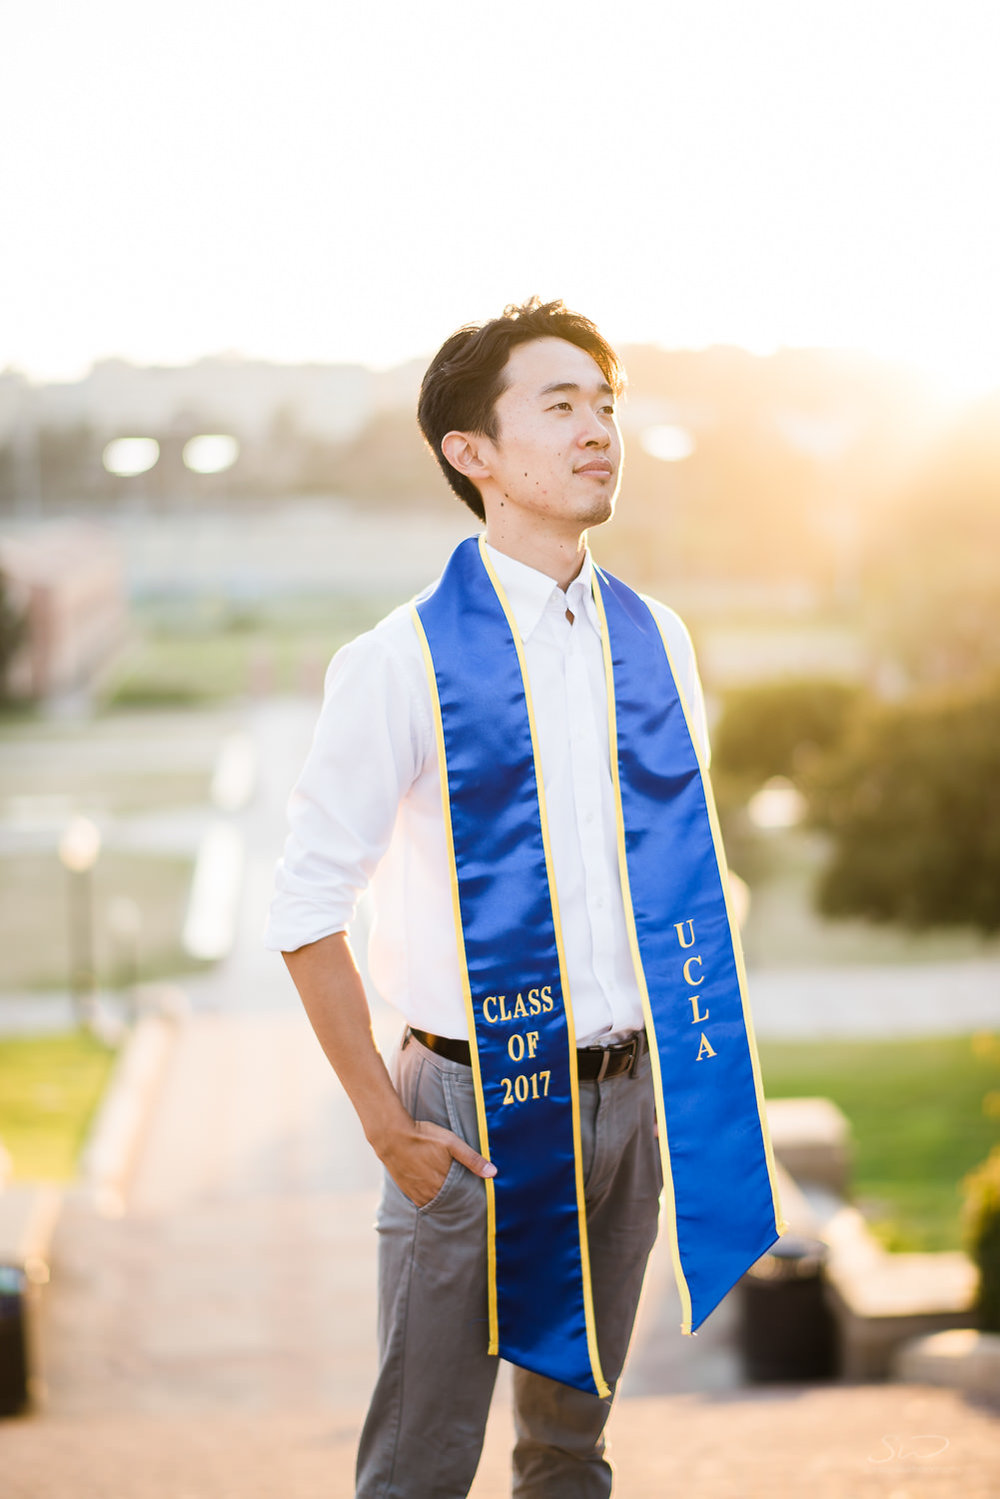 Heroic Portrait at UCLA. Best graduation portrait photography, Los Angeles.